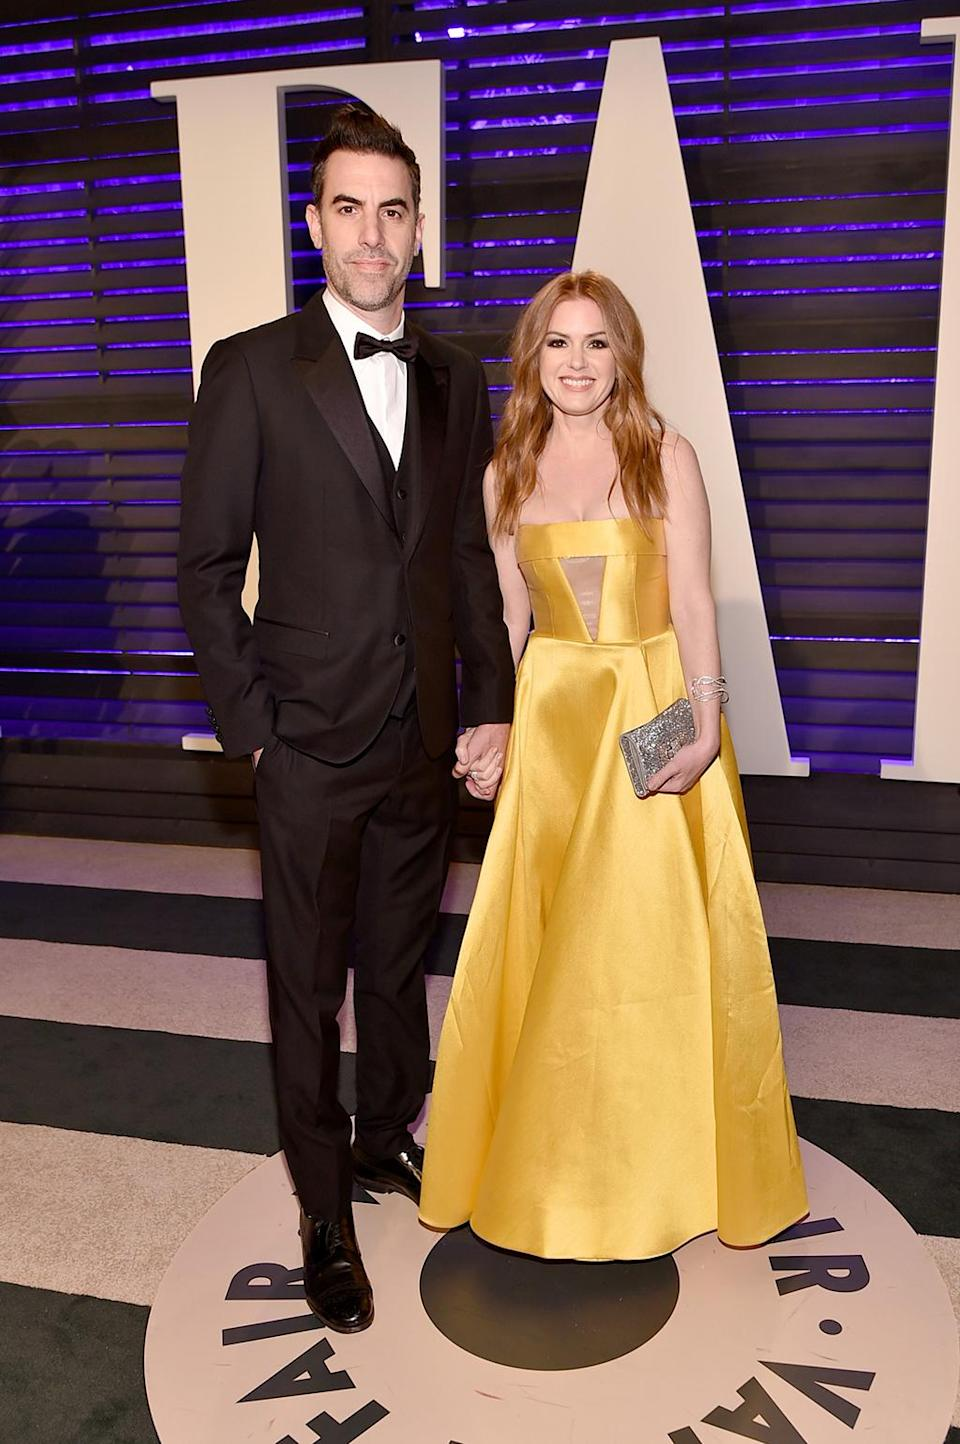 <p>Sacha Baron Cohen and Isla Fisher attend the 2017 Vanity Fair Oscar Party hosted by Graydon Carter at Wallis Annenberg Center for the Performing Arts on February 26, 2017 in Beverly Hills, California. (Photo by Mike Coppola/VF17/Getty Images for VF) </p>